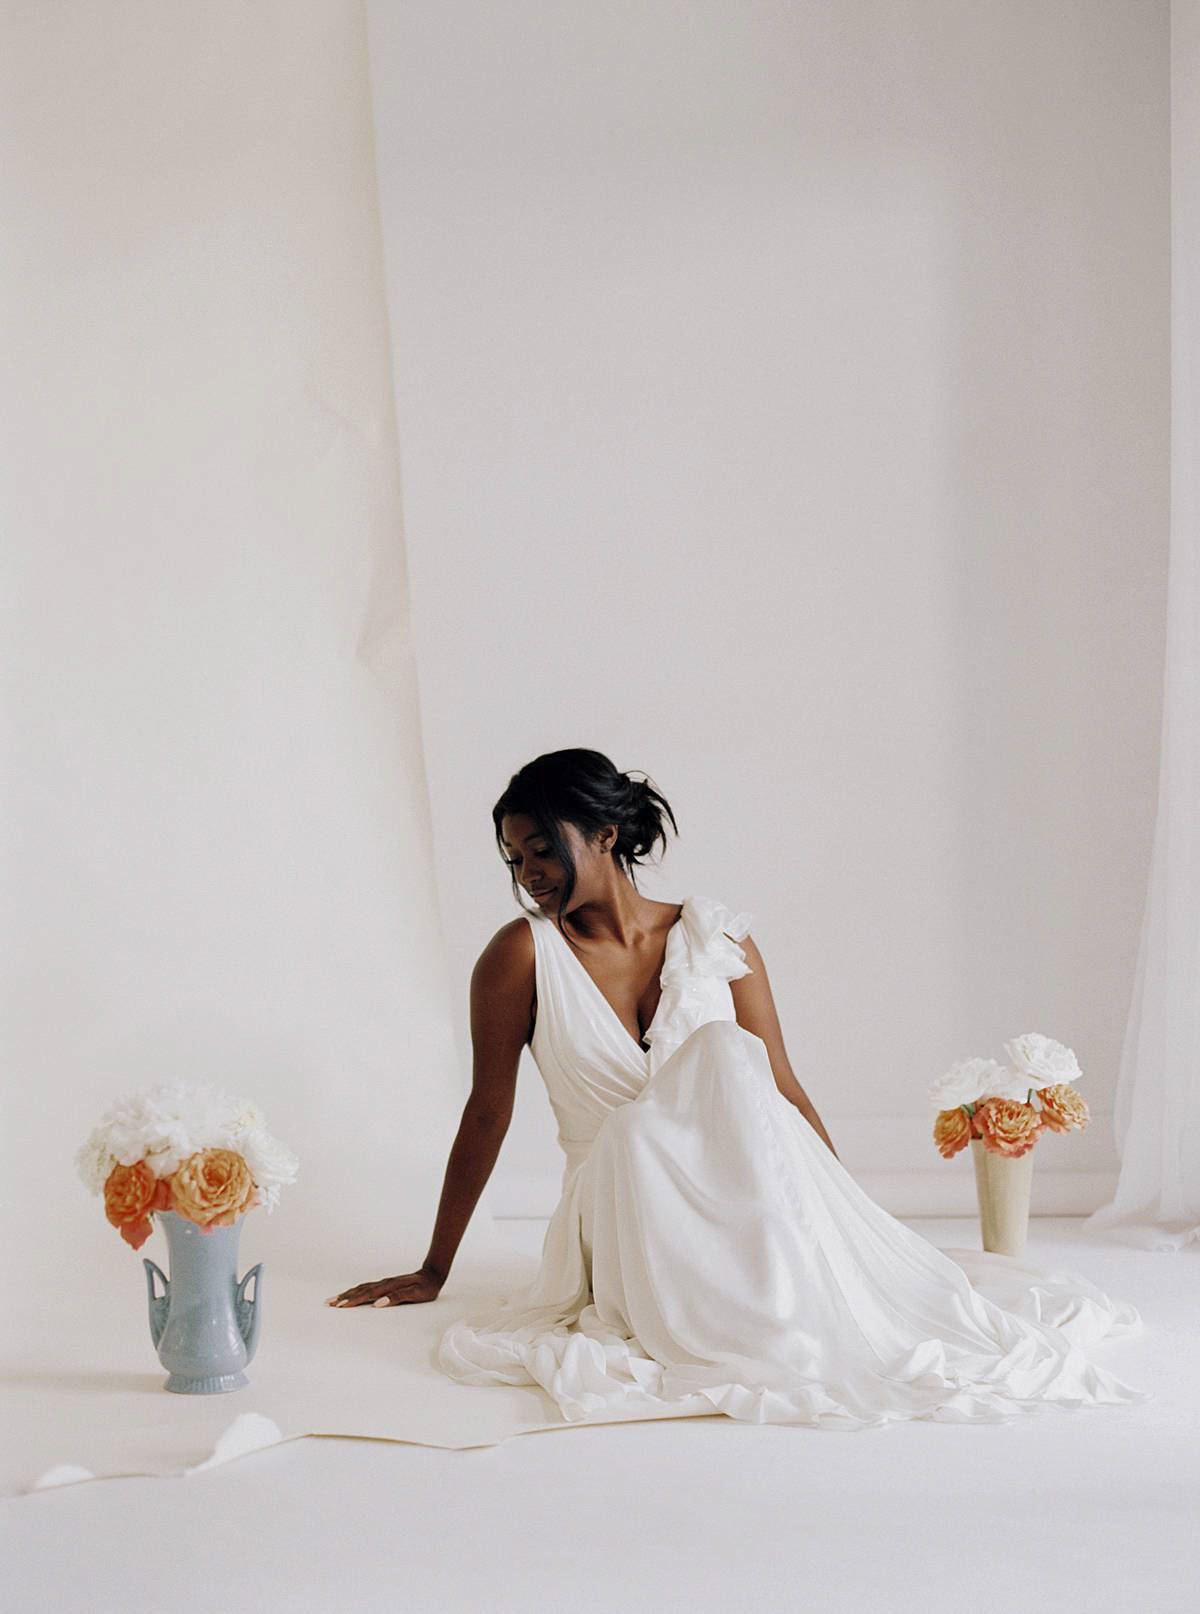 charleston film bridal portrait wedding studio bridal african american orange white kodak portra 800 contax 645